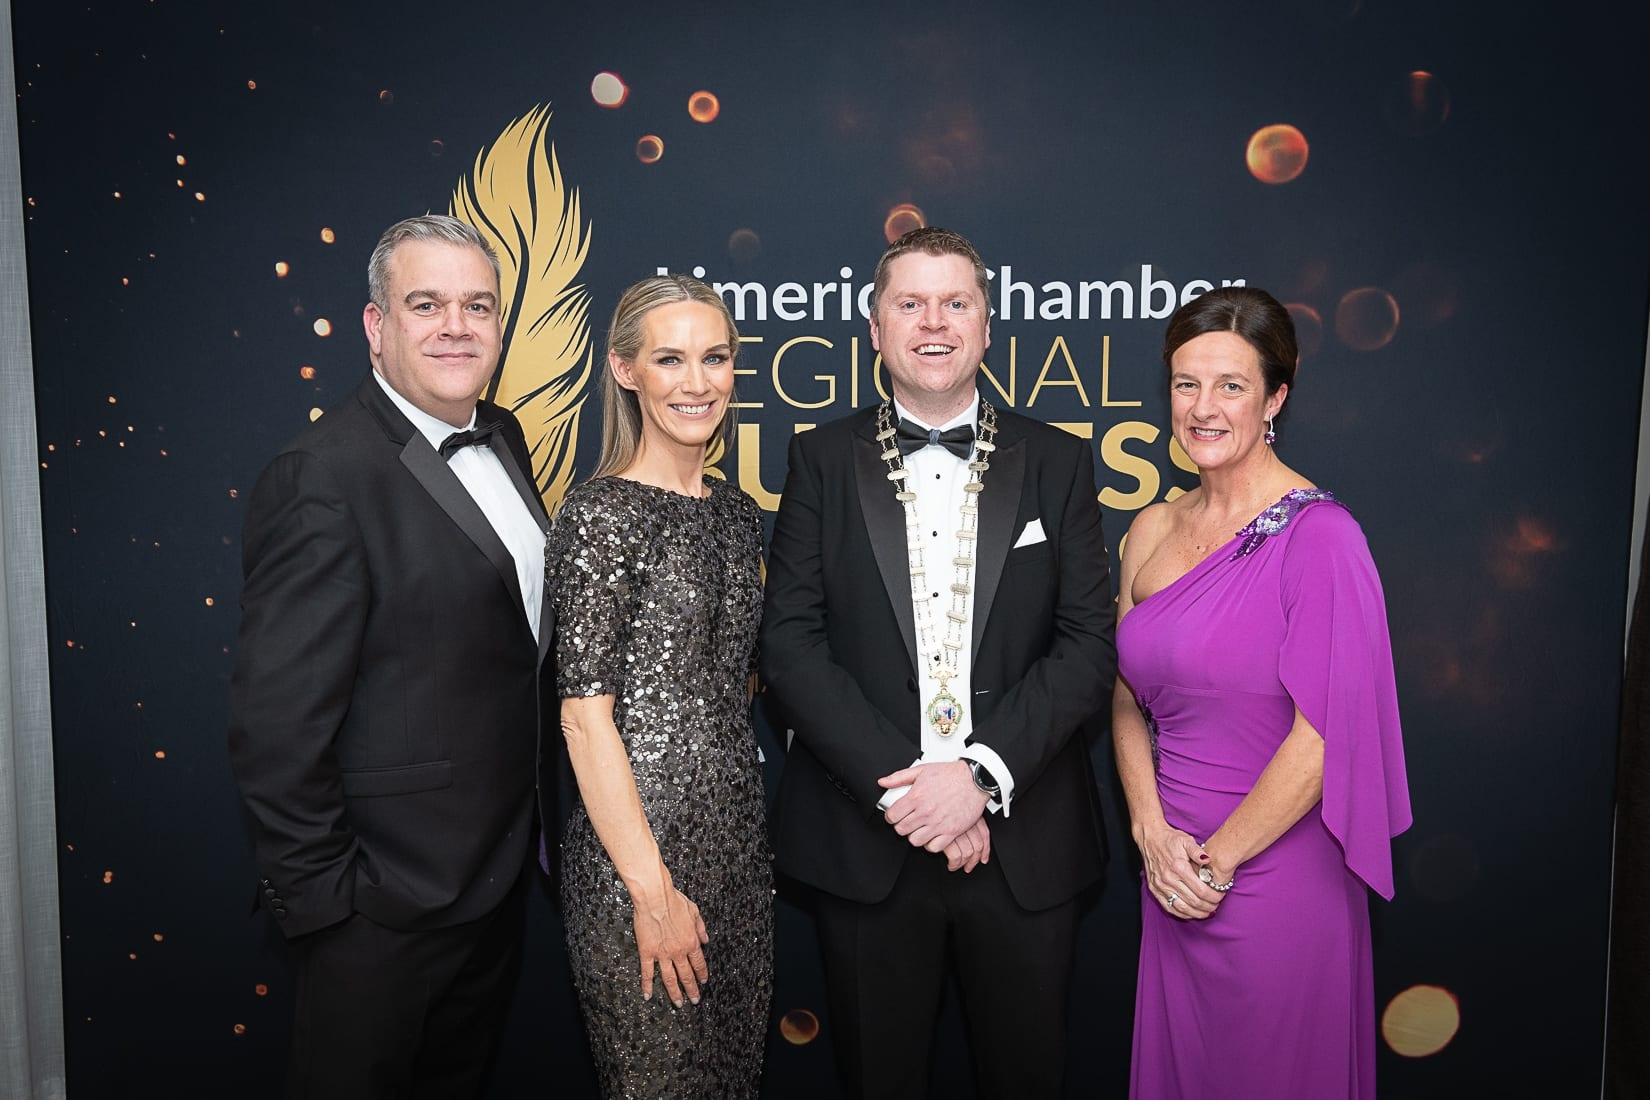 No repro fee-Limerick Chamber President's Dinner and Limerick Chamber Regional Business Awards 2019 which was held in the Strand Hotel on Friday 15th November - From Left to Right:Noel Gavin - Board of Directors Limerick Chamber,  Dee Ryan - CEO Limerick Chamber, Eoin Ryan - President Limerick Chamber, Dr Mary Shire - Board of Directors Limerick Chamber,   Photo credit Shauna Kennedy